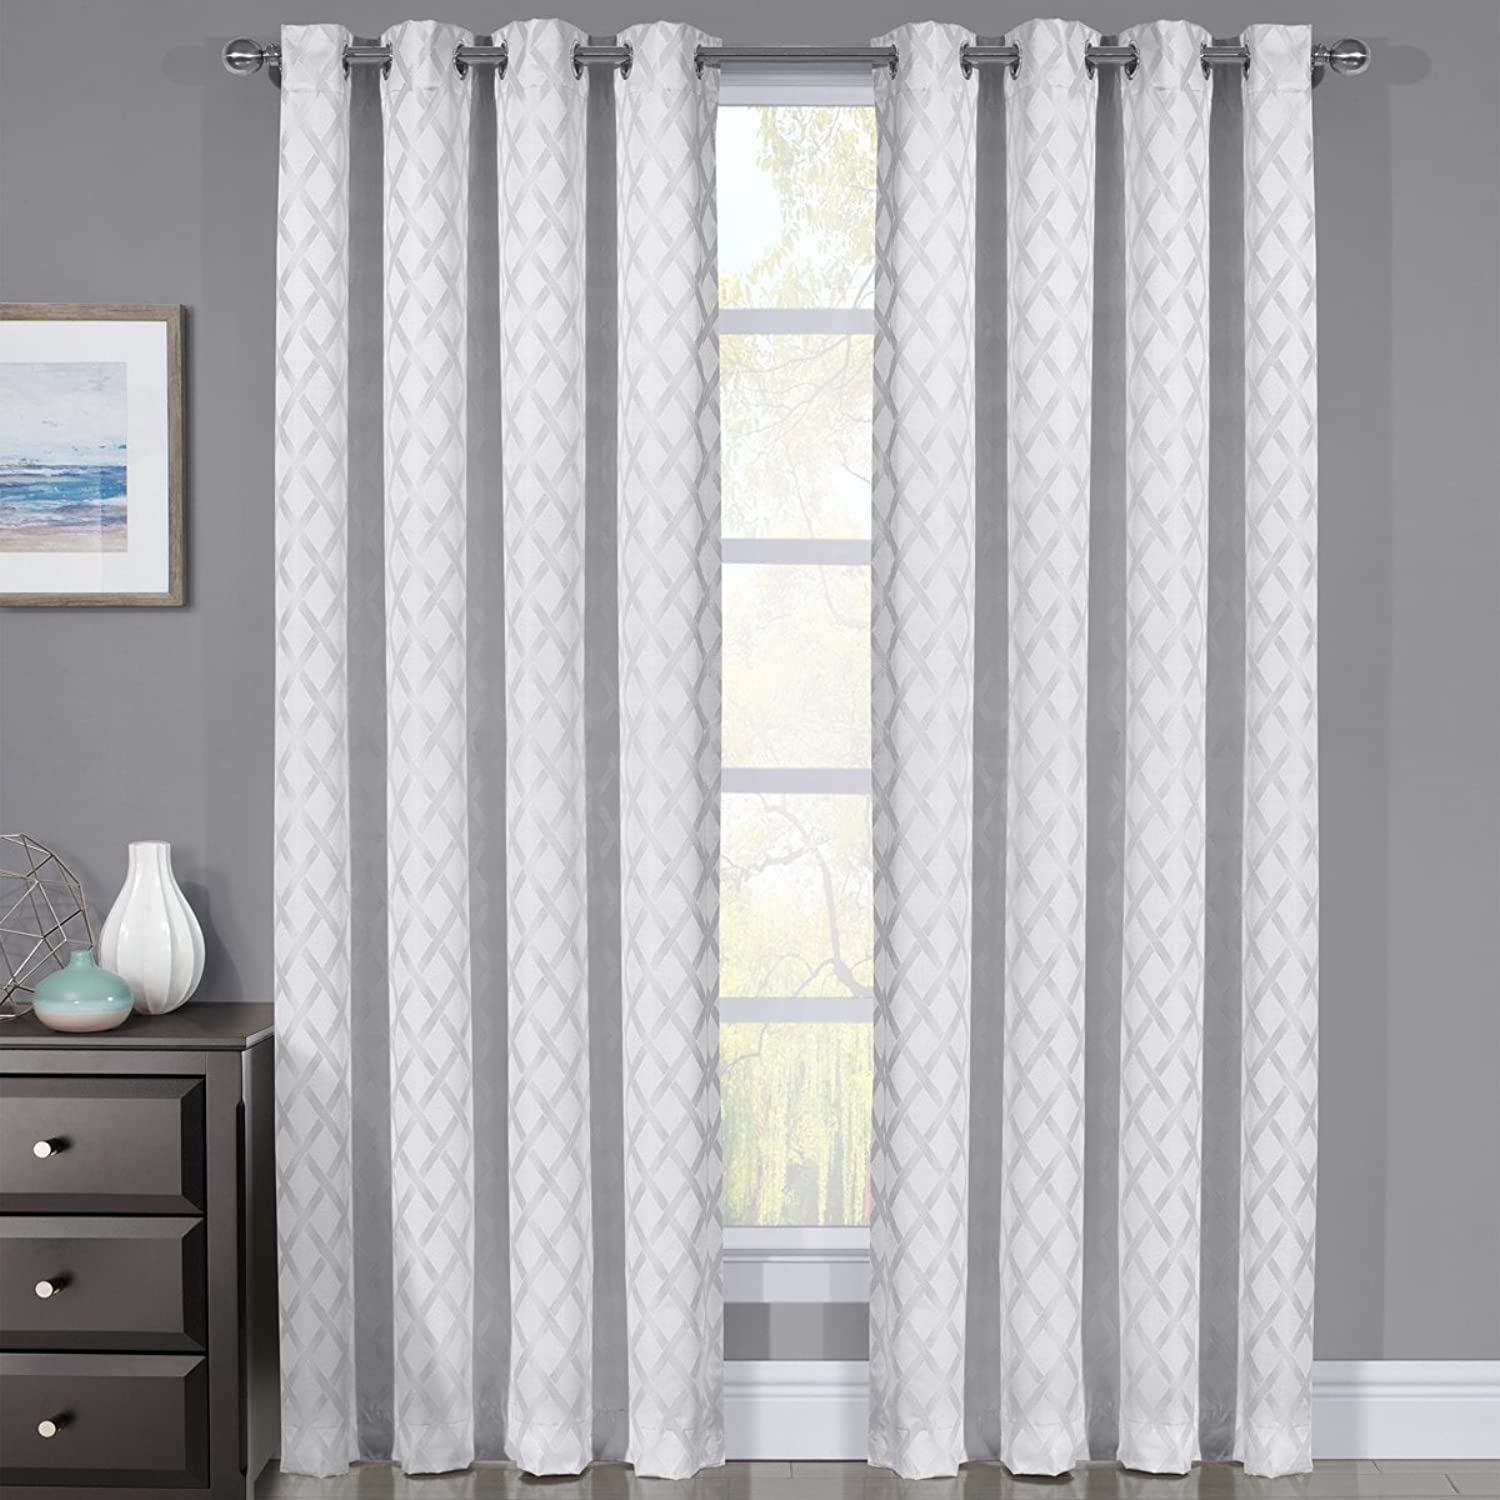 Royal Bedding pinkline White Curtains, Top Grommet 100% Blackout, Thermal Insulated Window Curtain Panels, Pair Set of 2 Panels, 54Wx96L inches Each